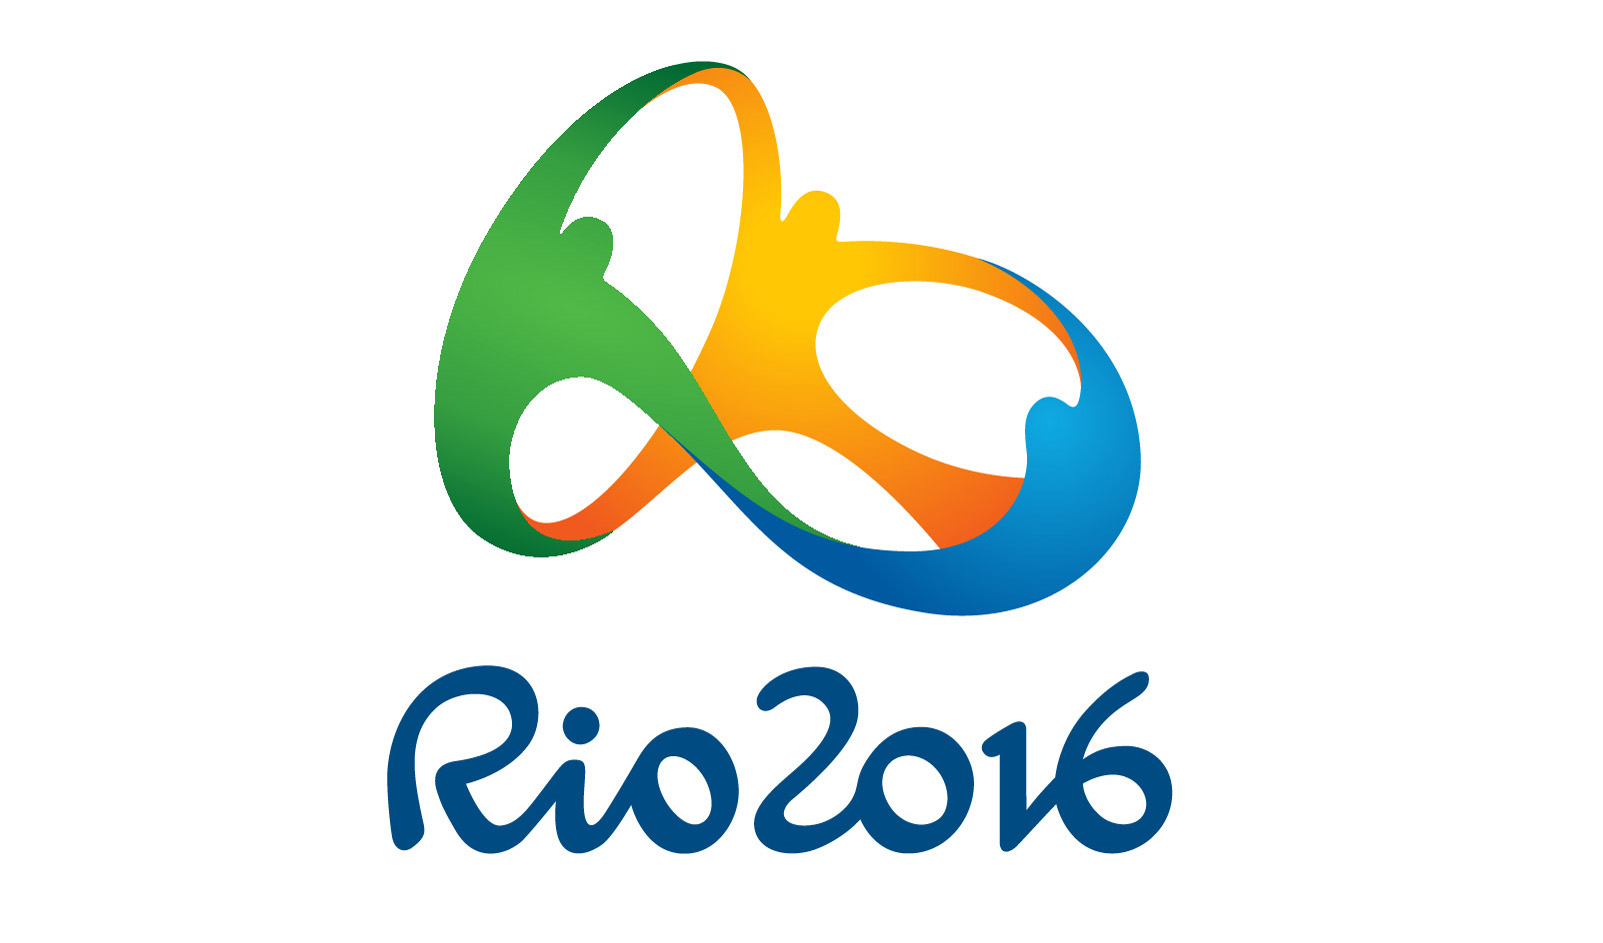 Rio 2016 Olympic Logo Vector Graphic_2